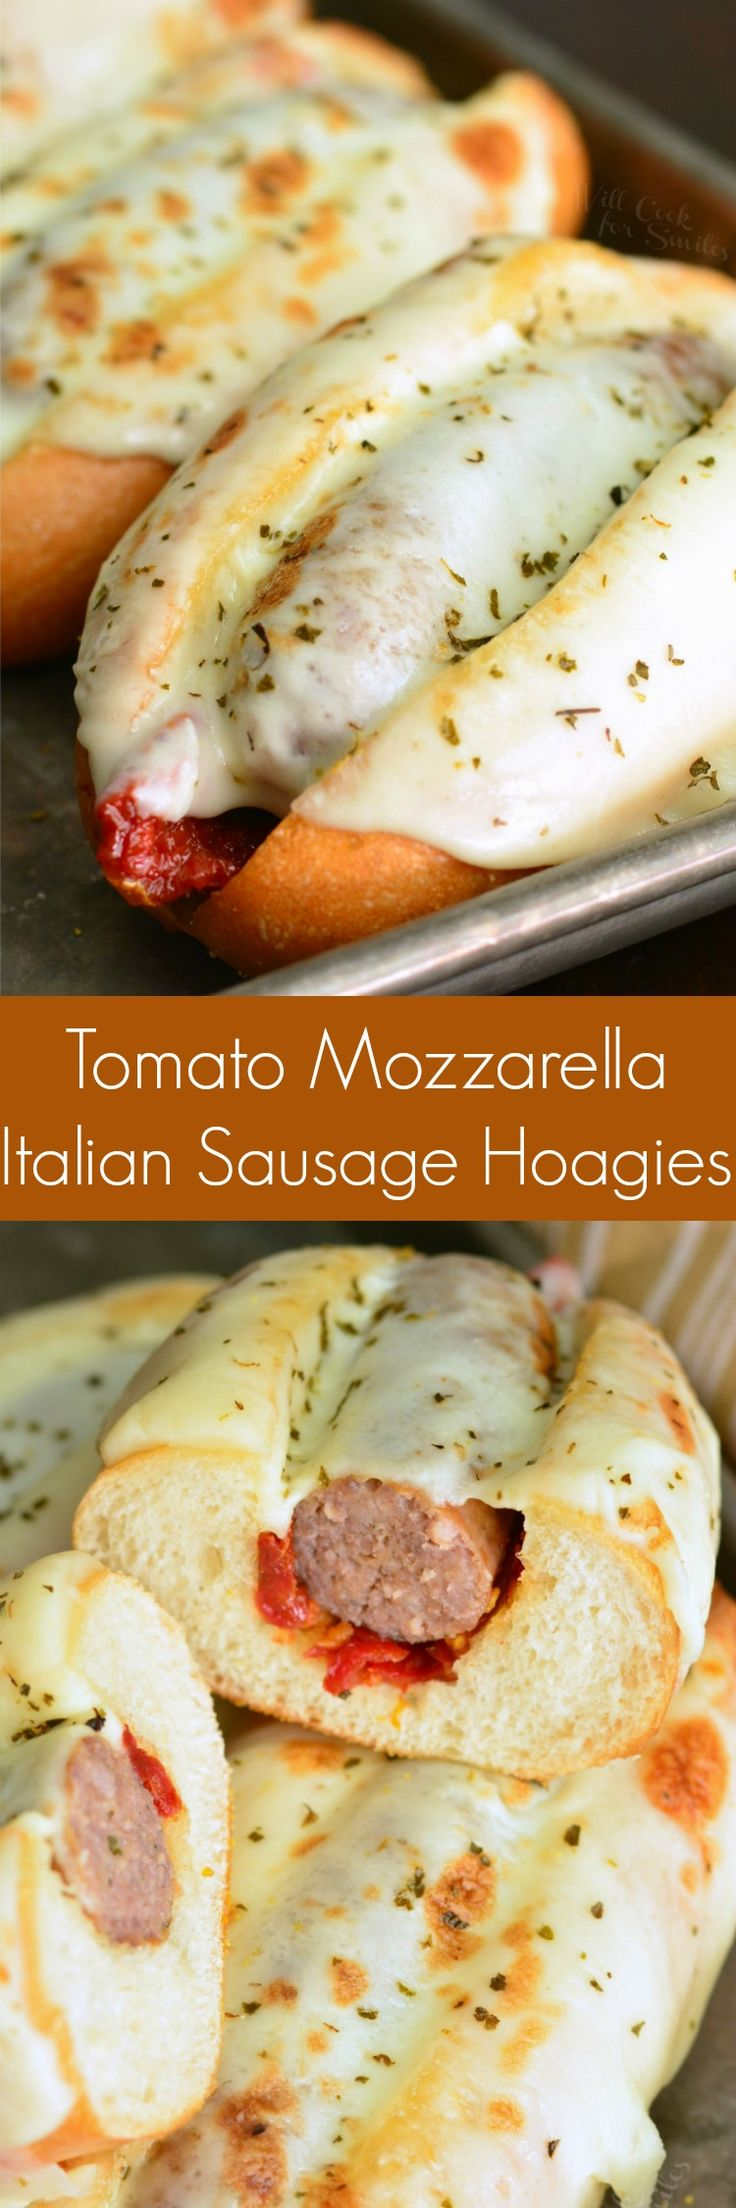 Tomato Mozzarella Italian Sausage Hoagies. These simple sausage hoagies are made with only 5 ingredients but taste AMAZING. #sausagesandwich #hoagies